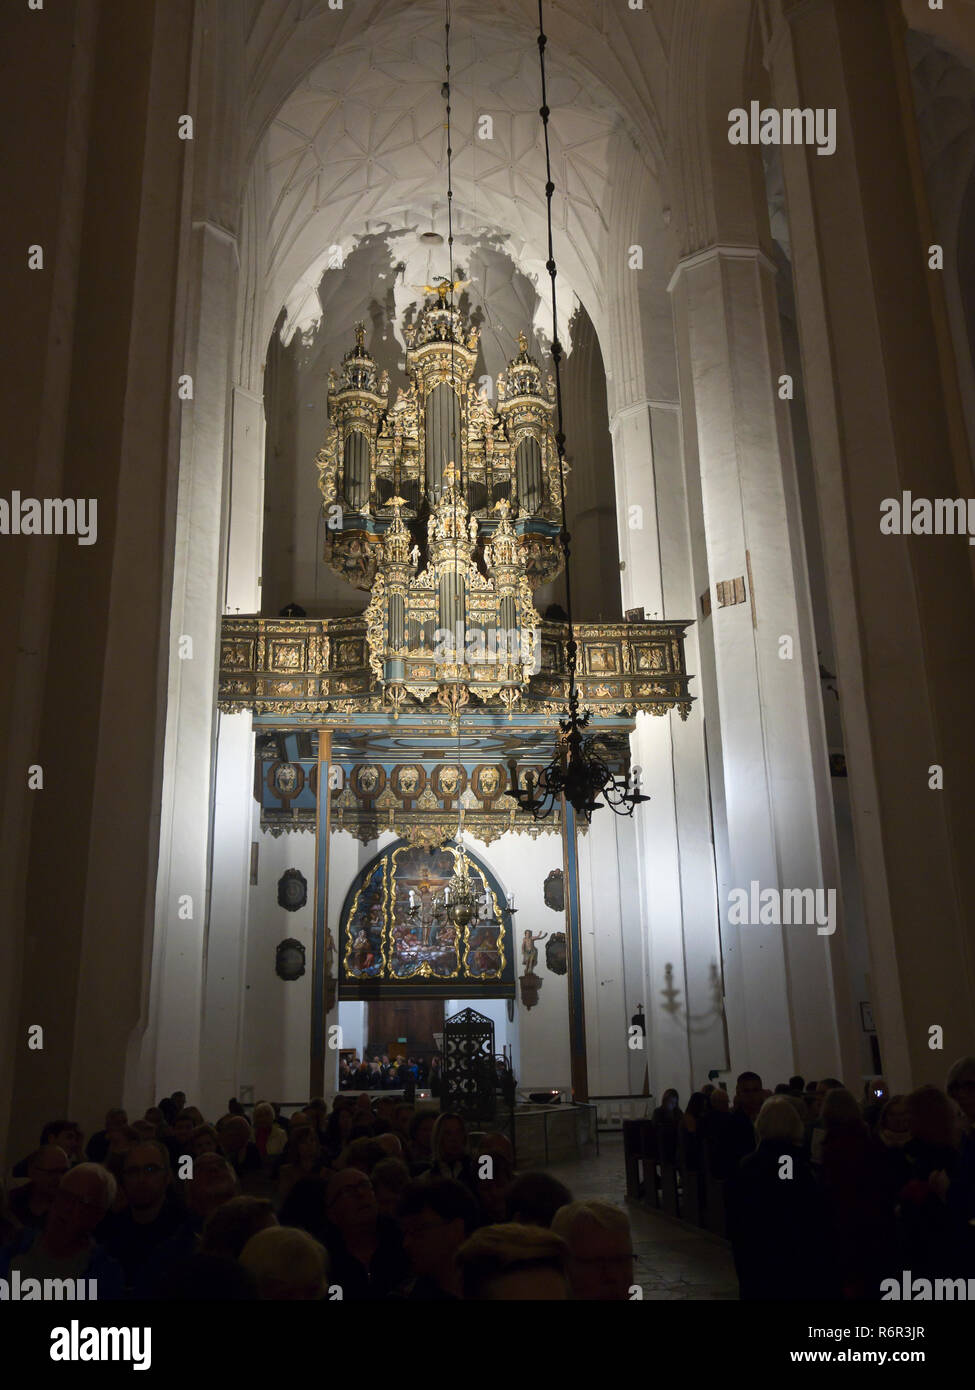 The grand baroque organ in the St Mary´s church in the old town centre of Gdansk Poland, flooded with light during an organ recital - Stock Image